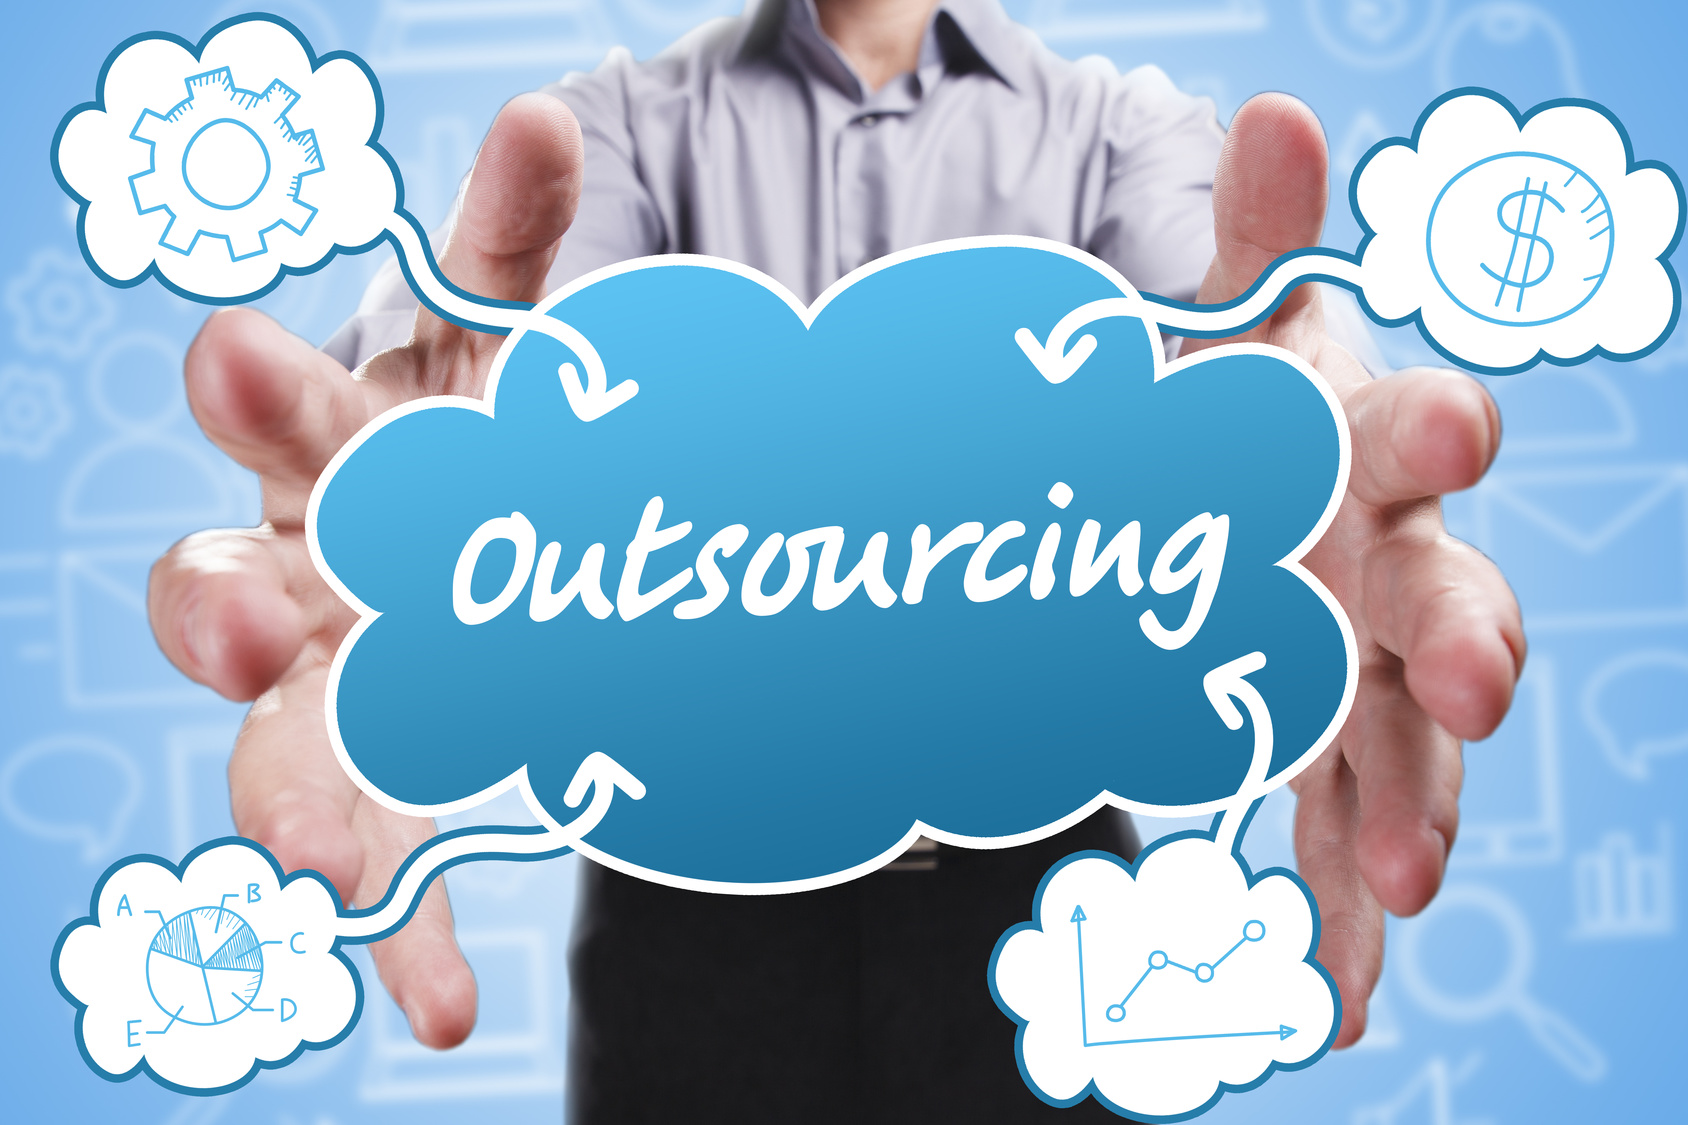 4 Reasons Why Outsourcing Is a Good Strategy for Start-Ups